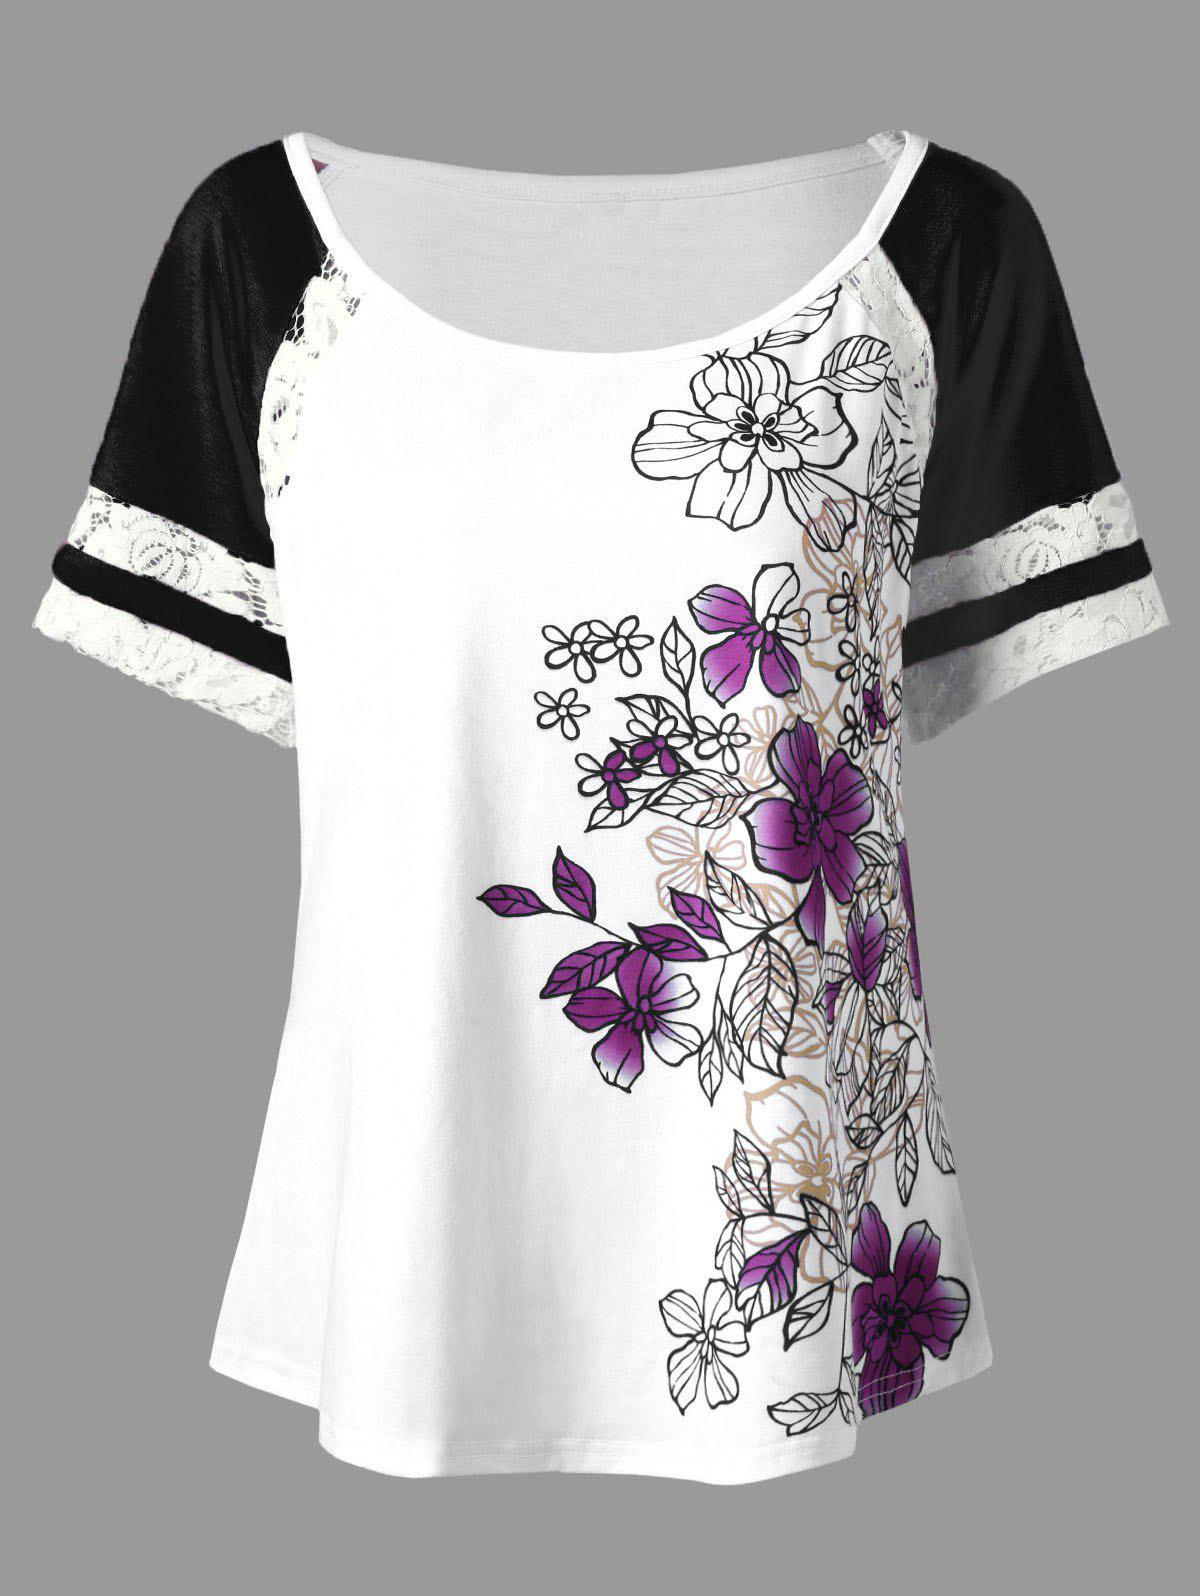 Floral Print Plus Size Scoop Casual T-shirtWOMEN<br><br>Size: 3XL; Color: PURPLE; Material: Polyester,Spandex; Shirt Length: Regular; Sleeve Length: Short; Collar: Scoop Neck; Style: Casual; Season: Summer; Pattern Type: Floral; Weight: 0.3700kg; Package Contents: 1 x T-shirt;